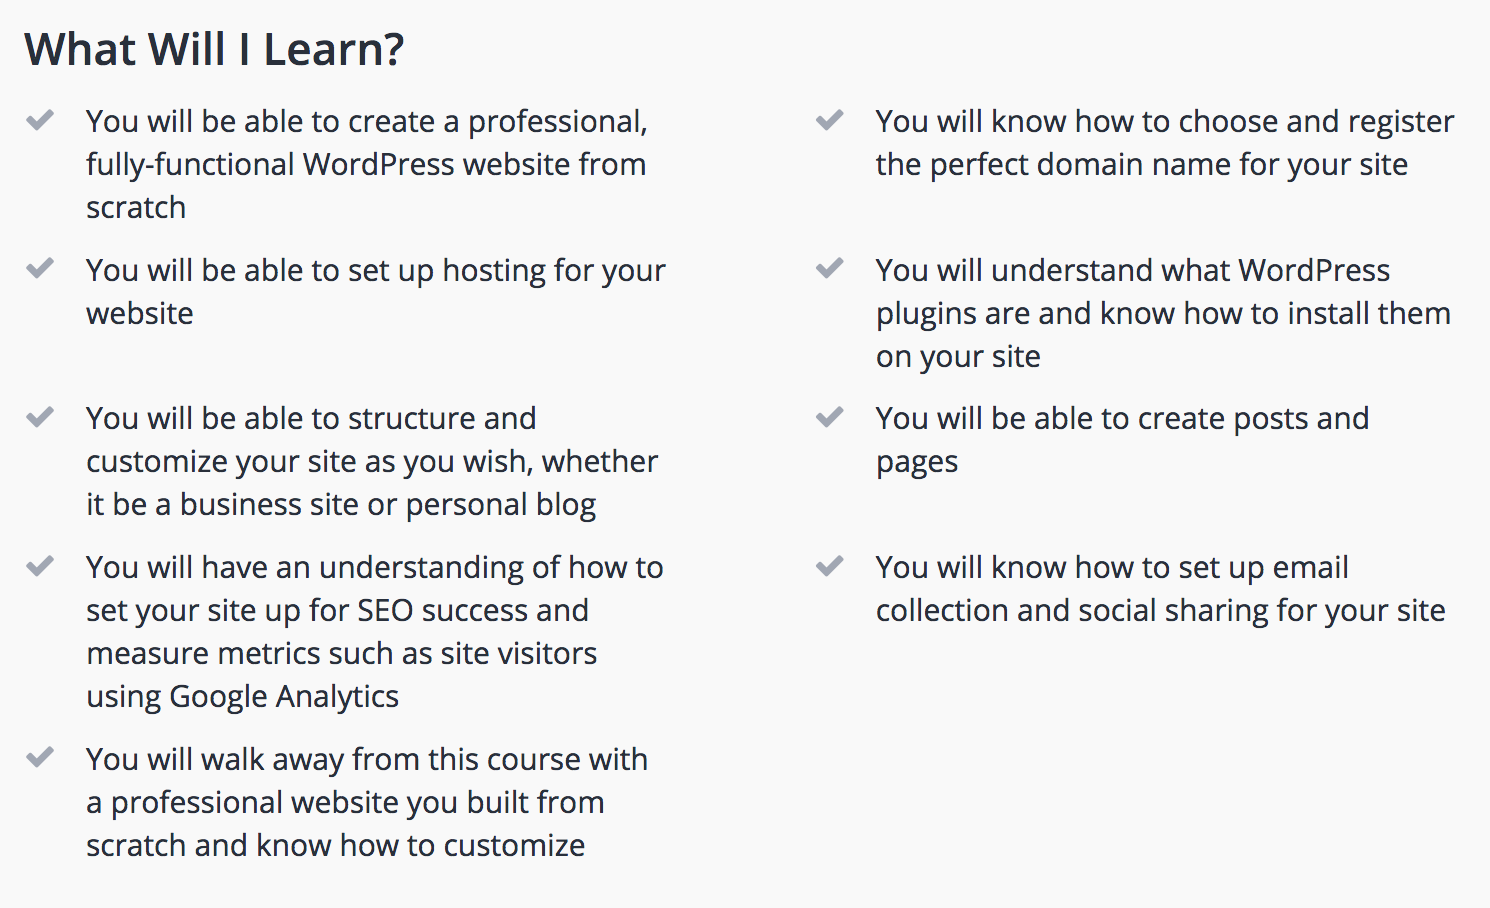 What You'll Learn in the Web Design Course